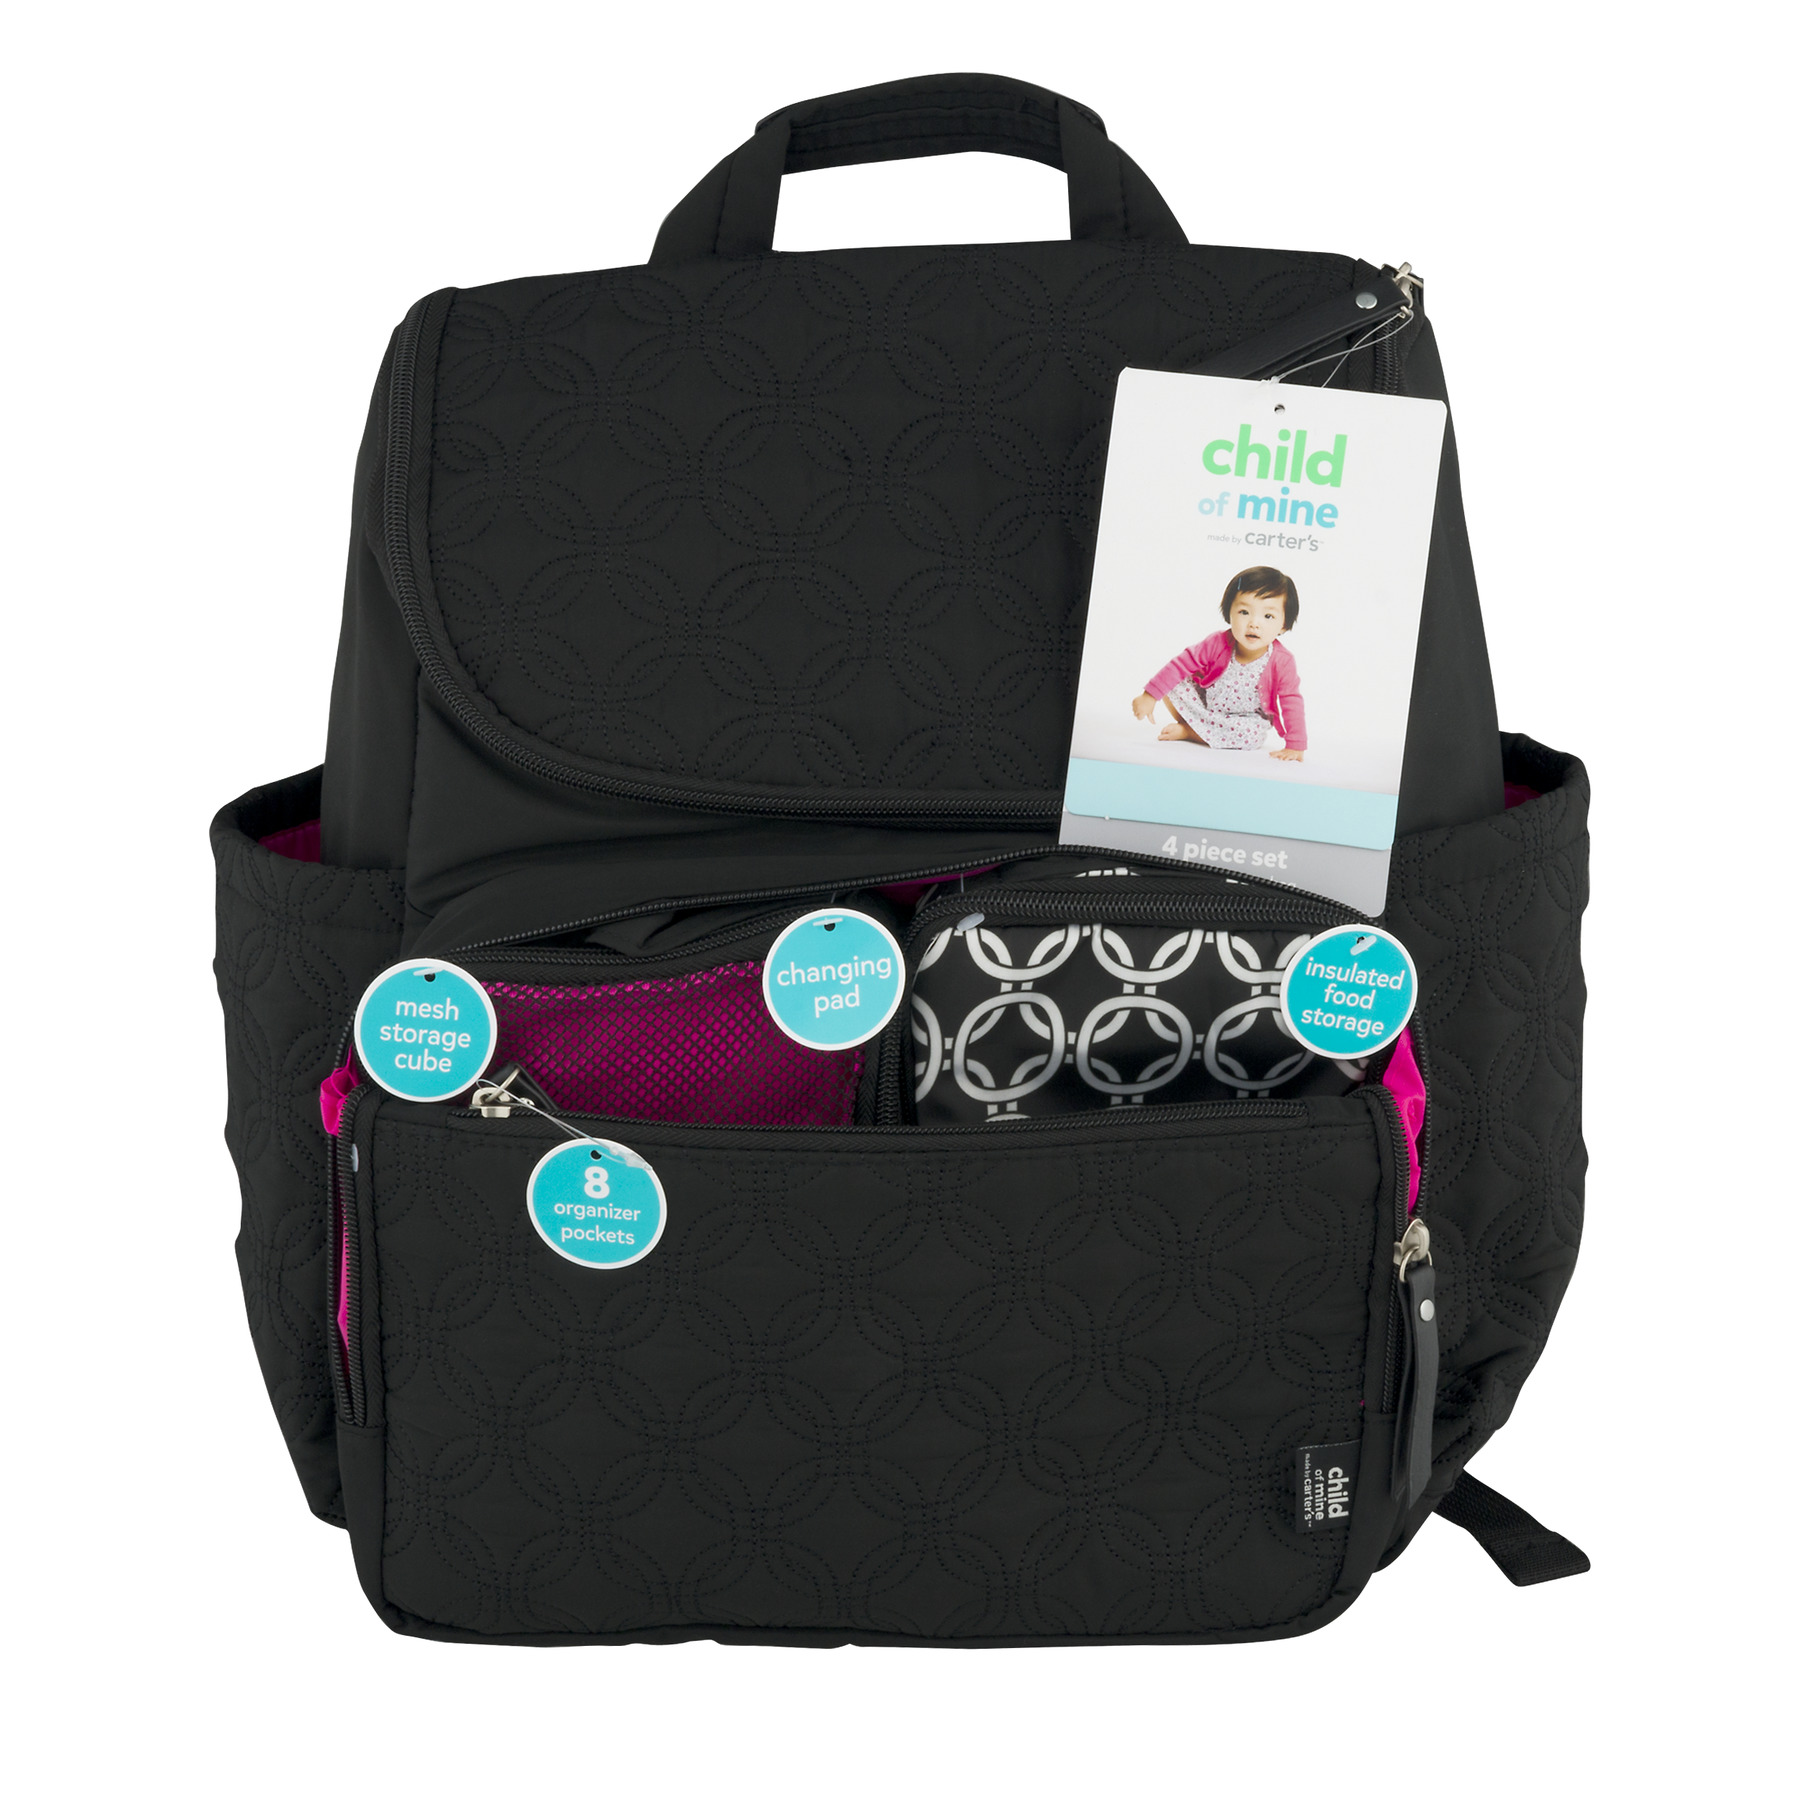 Child of Mine by Carter's Quilted Backpack Diaper Bag, Black